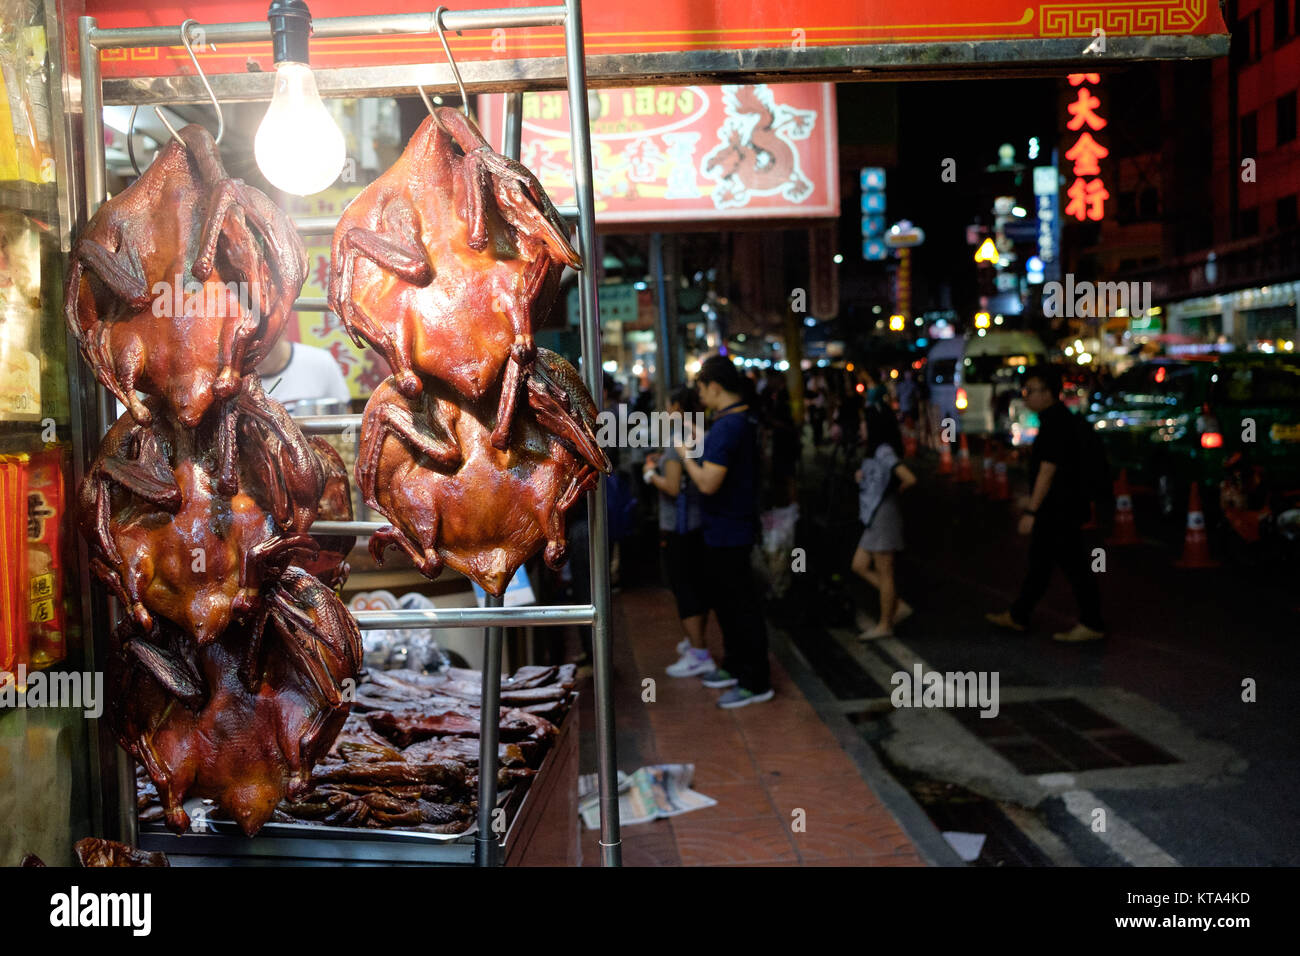 Crispy duck for sale in Bangkok's Chinatown, on the Yaorawat Road. Neon signs and tourists in the background. - Stock Image